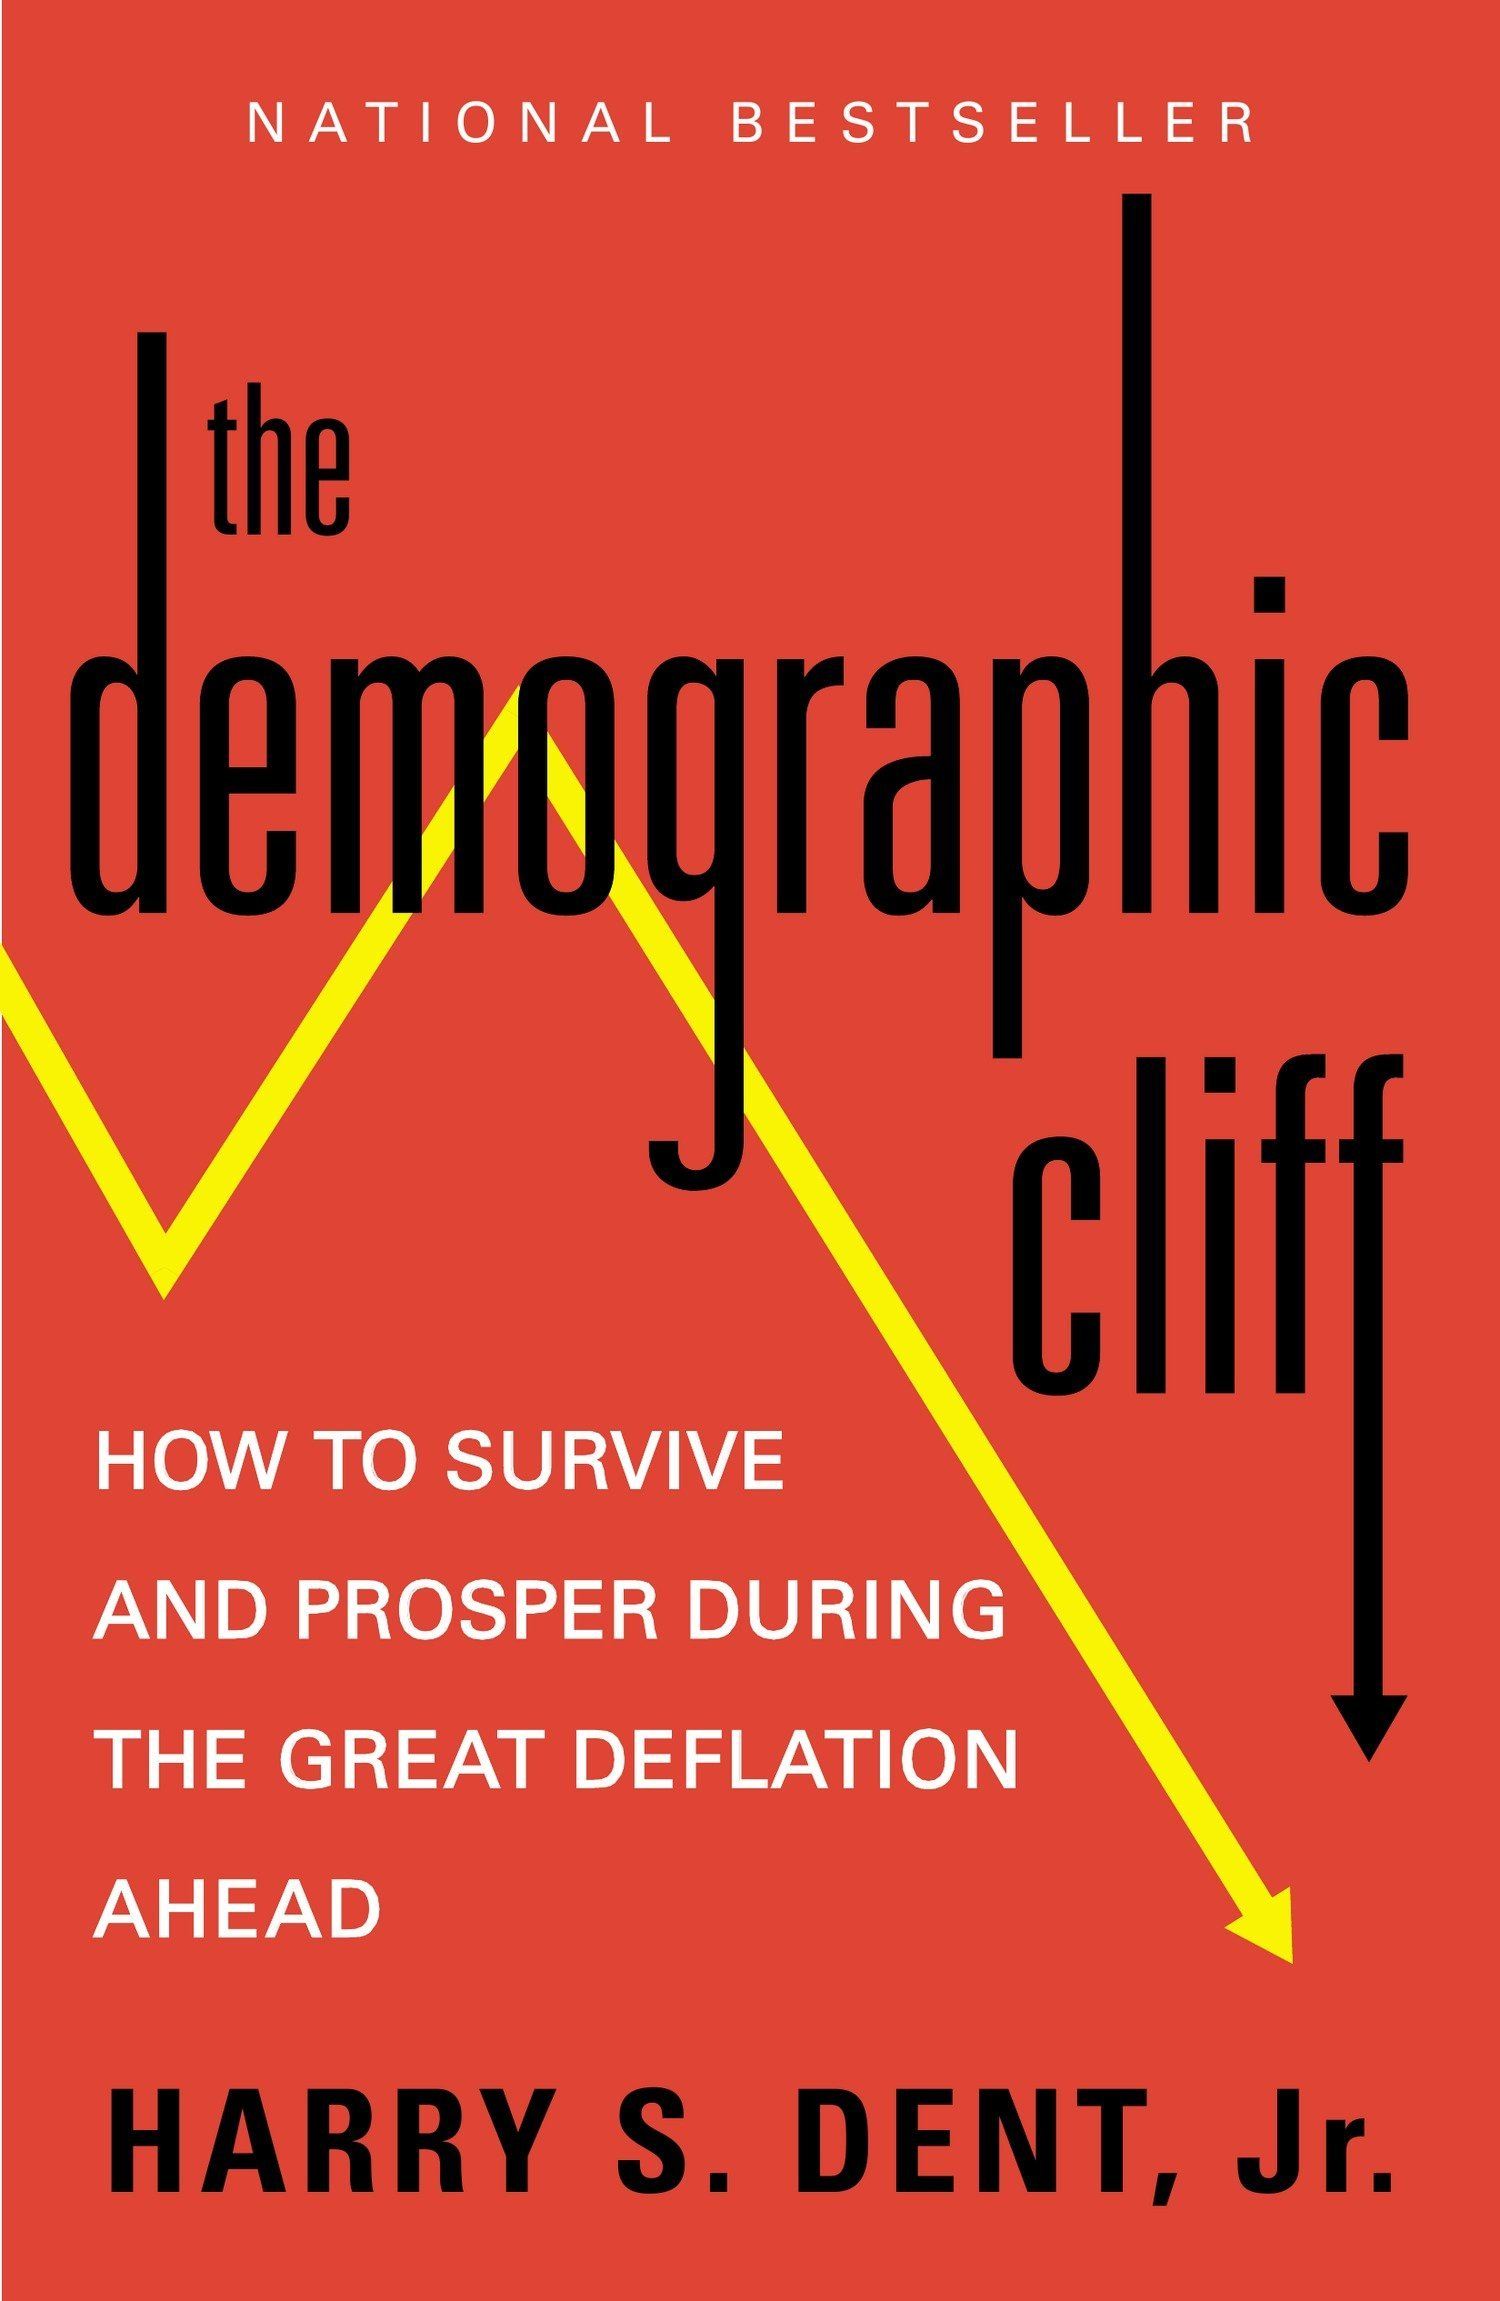 The Demographic Cliff: How to Survive and Prosper During the Great